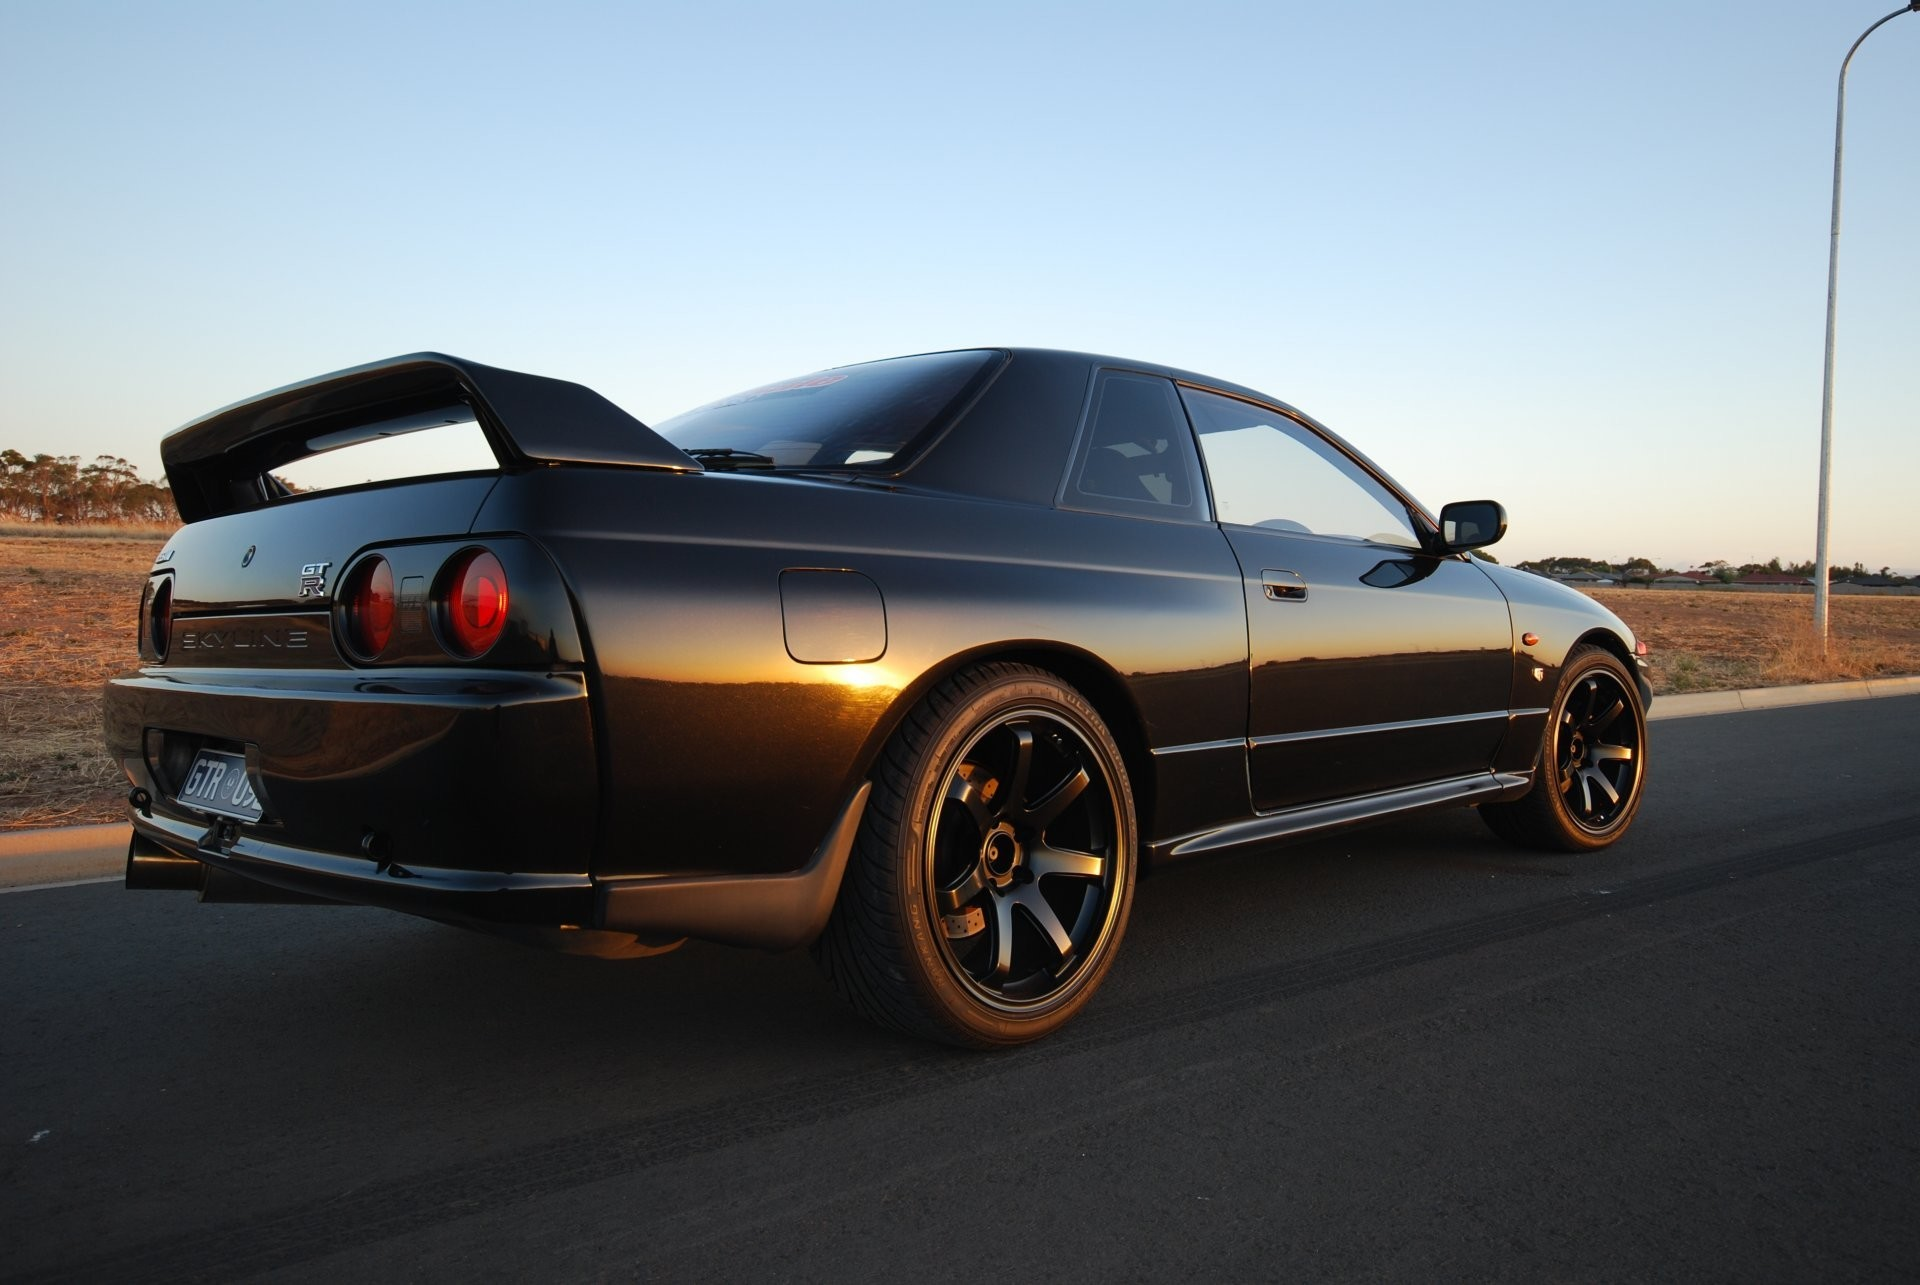 nissan skyline gt-r r32 coupe black japan wallpapers drift jdm nissan  skyline jeet –